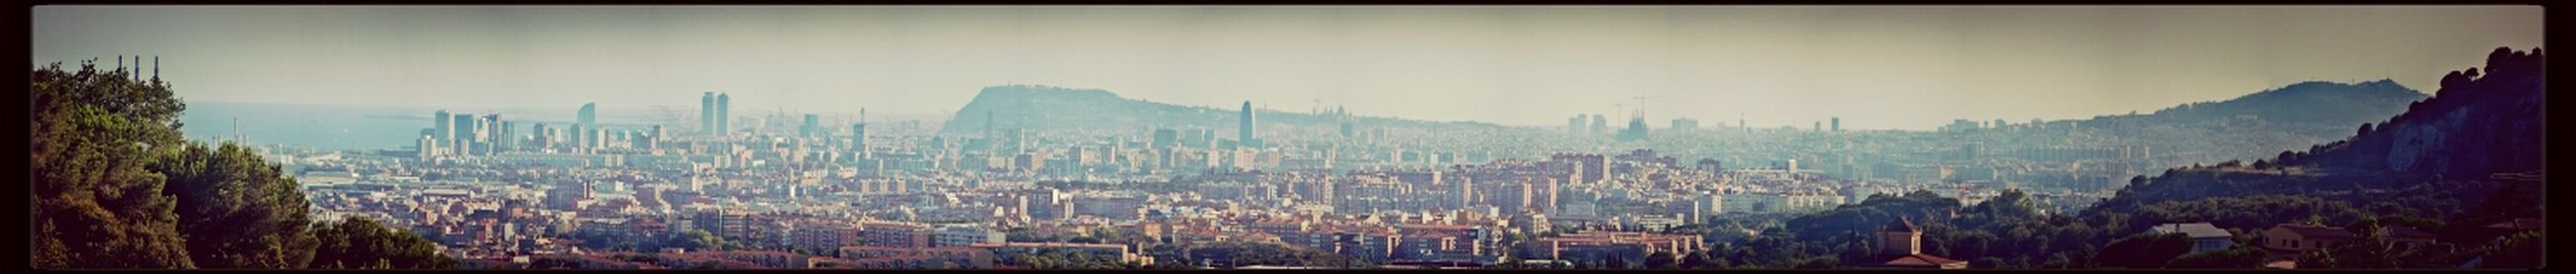 Barcelona Bcn Don't Be Square Panorama